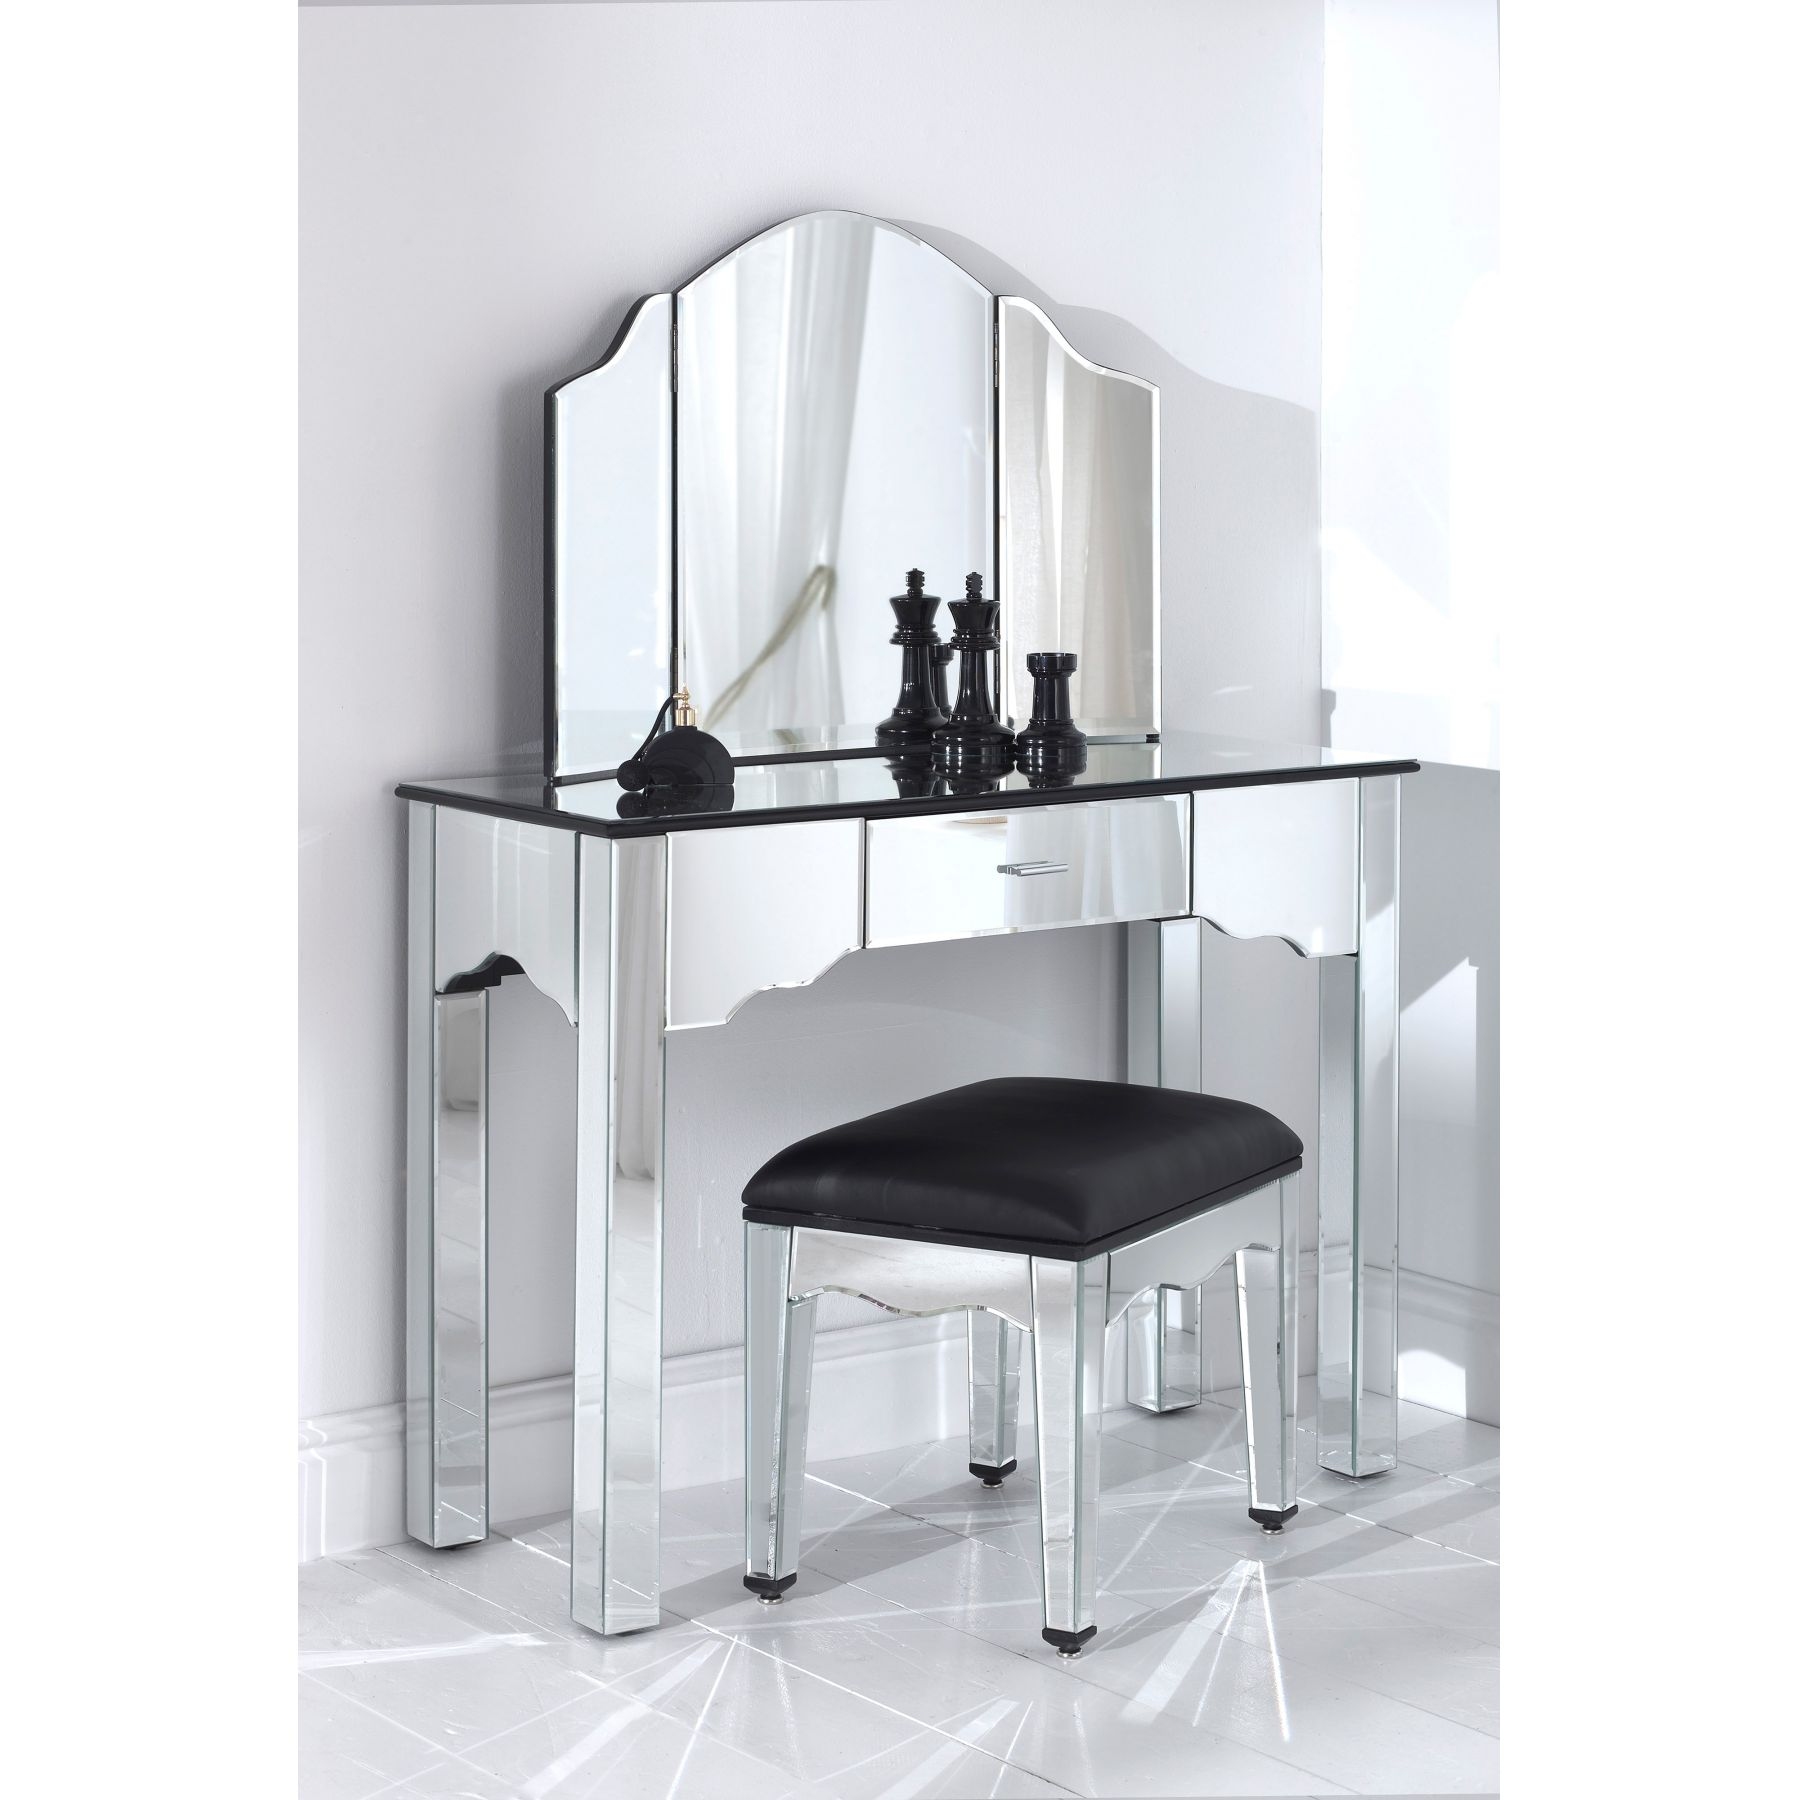 Vanity Set Makeup | Mirrored Vanity Set | Vanity Mirror Dresser Set